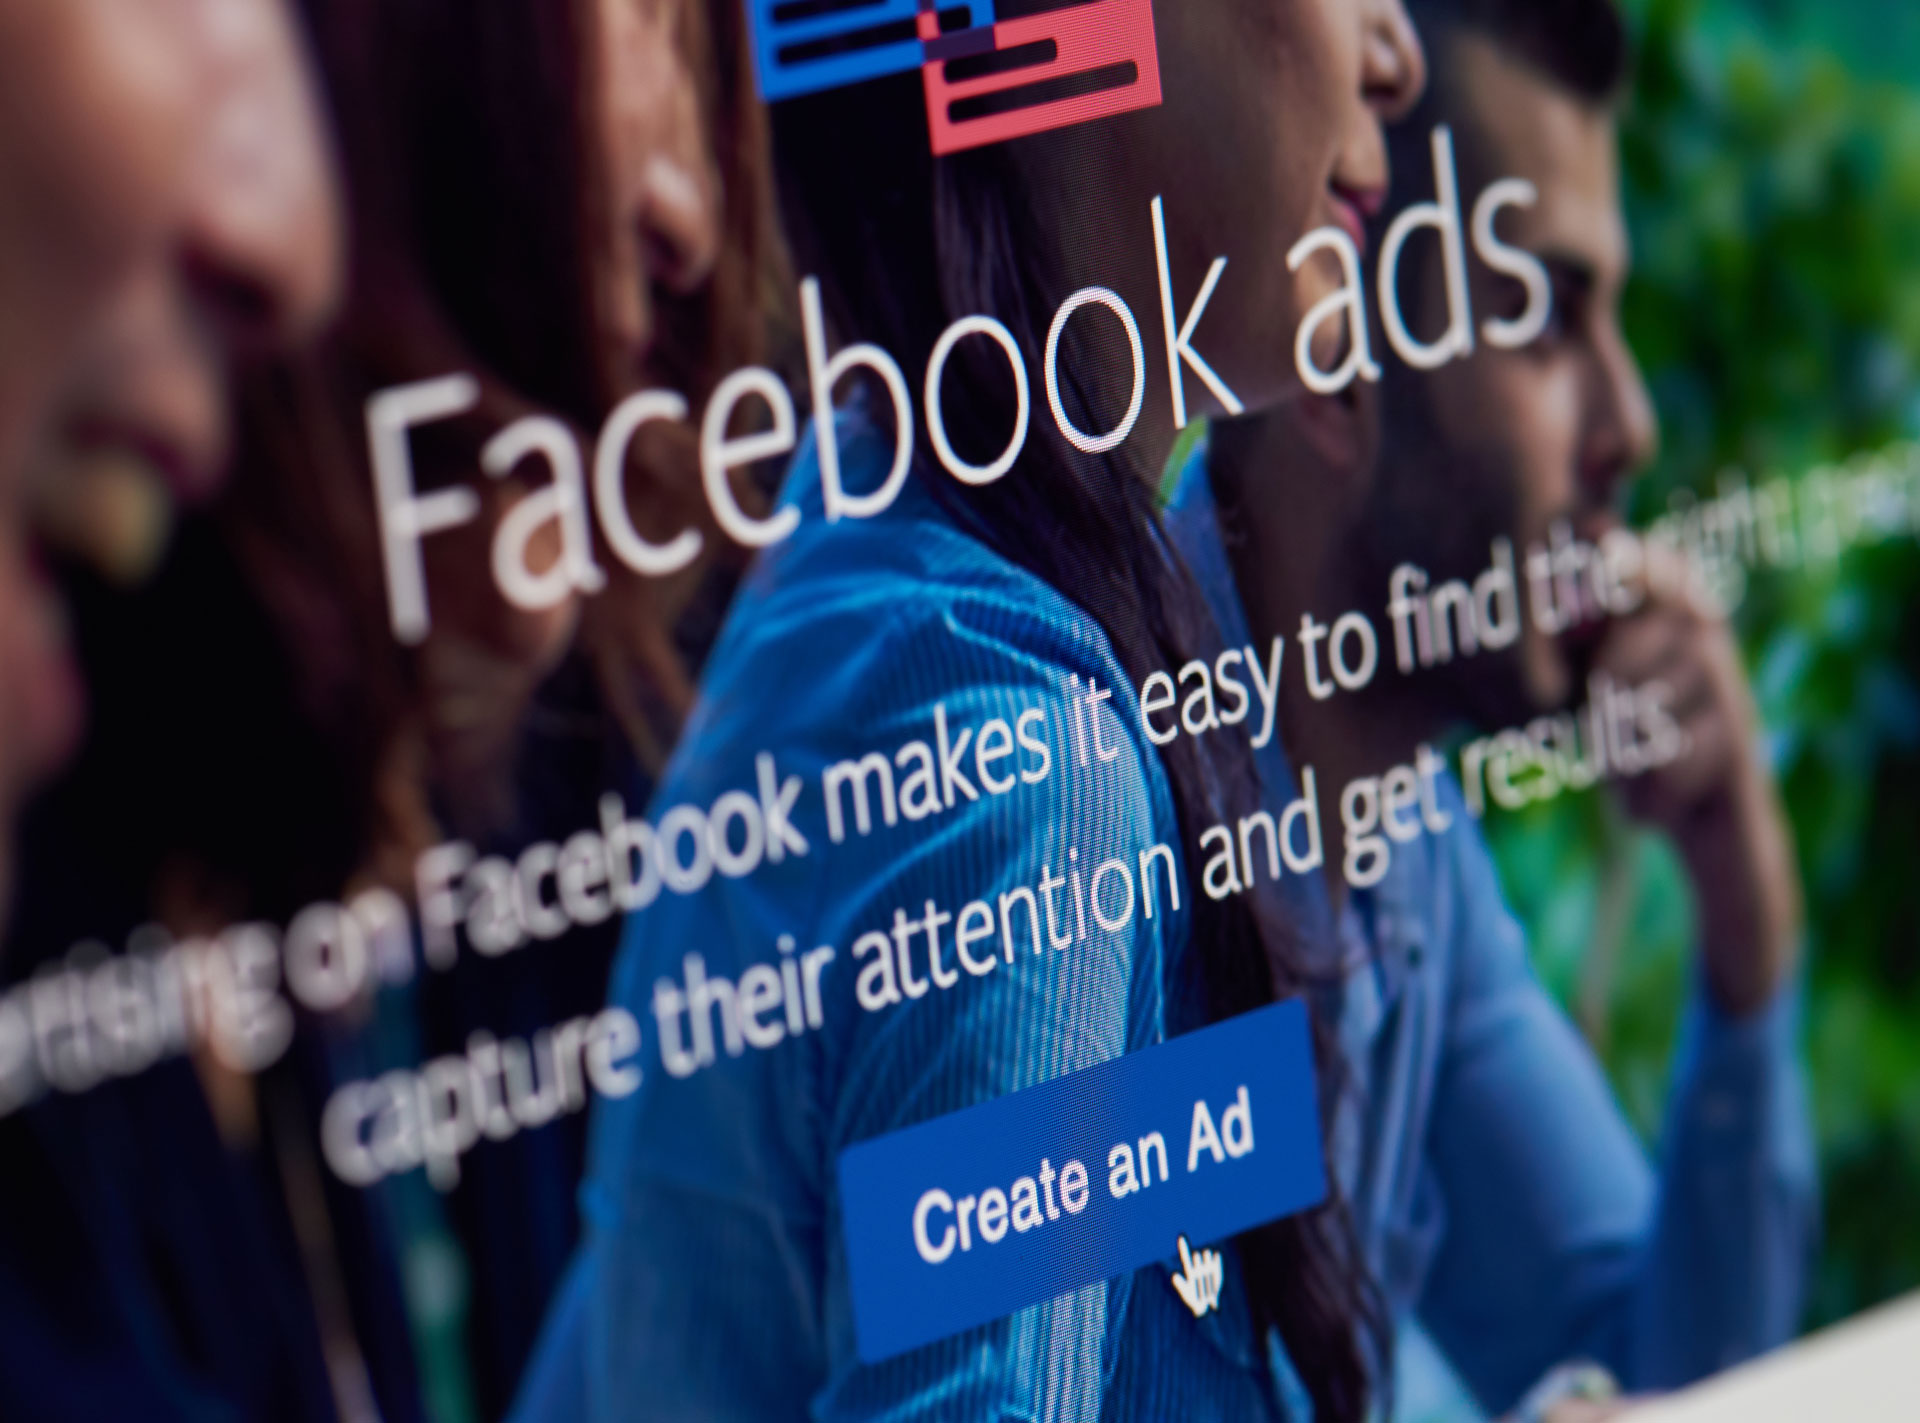 Facebook deleted pro-vaccination adverts on political grounds, study finds